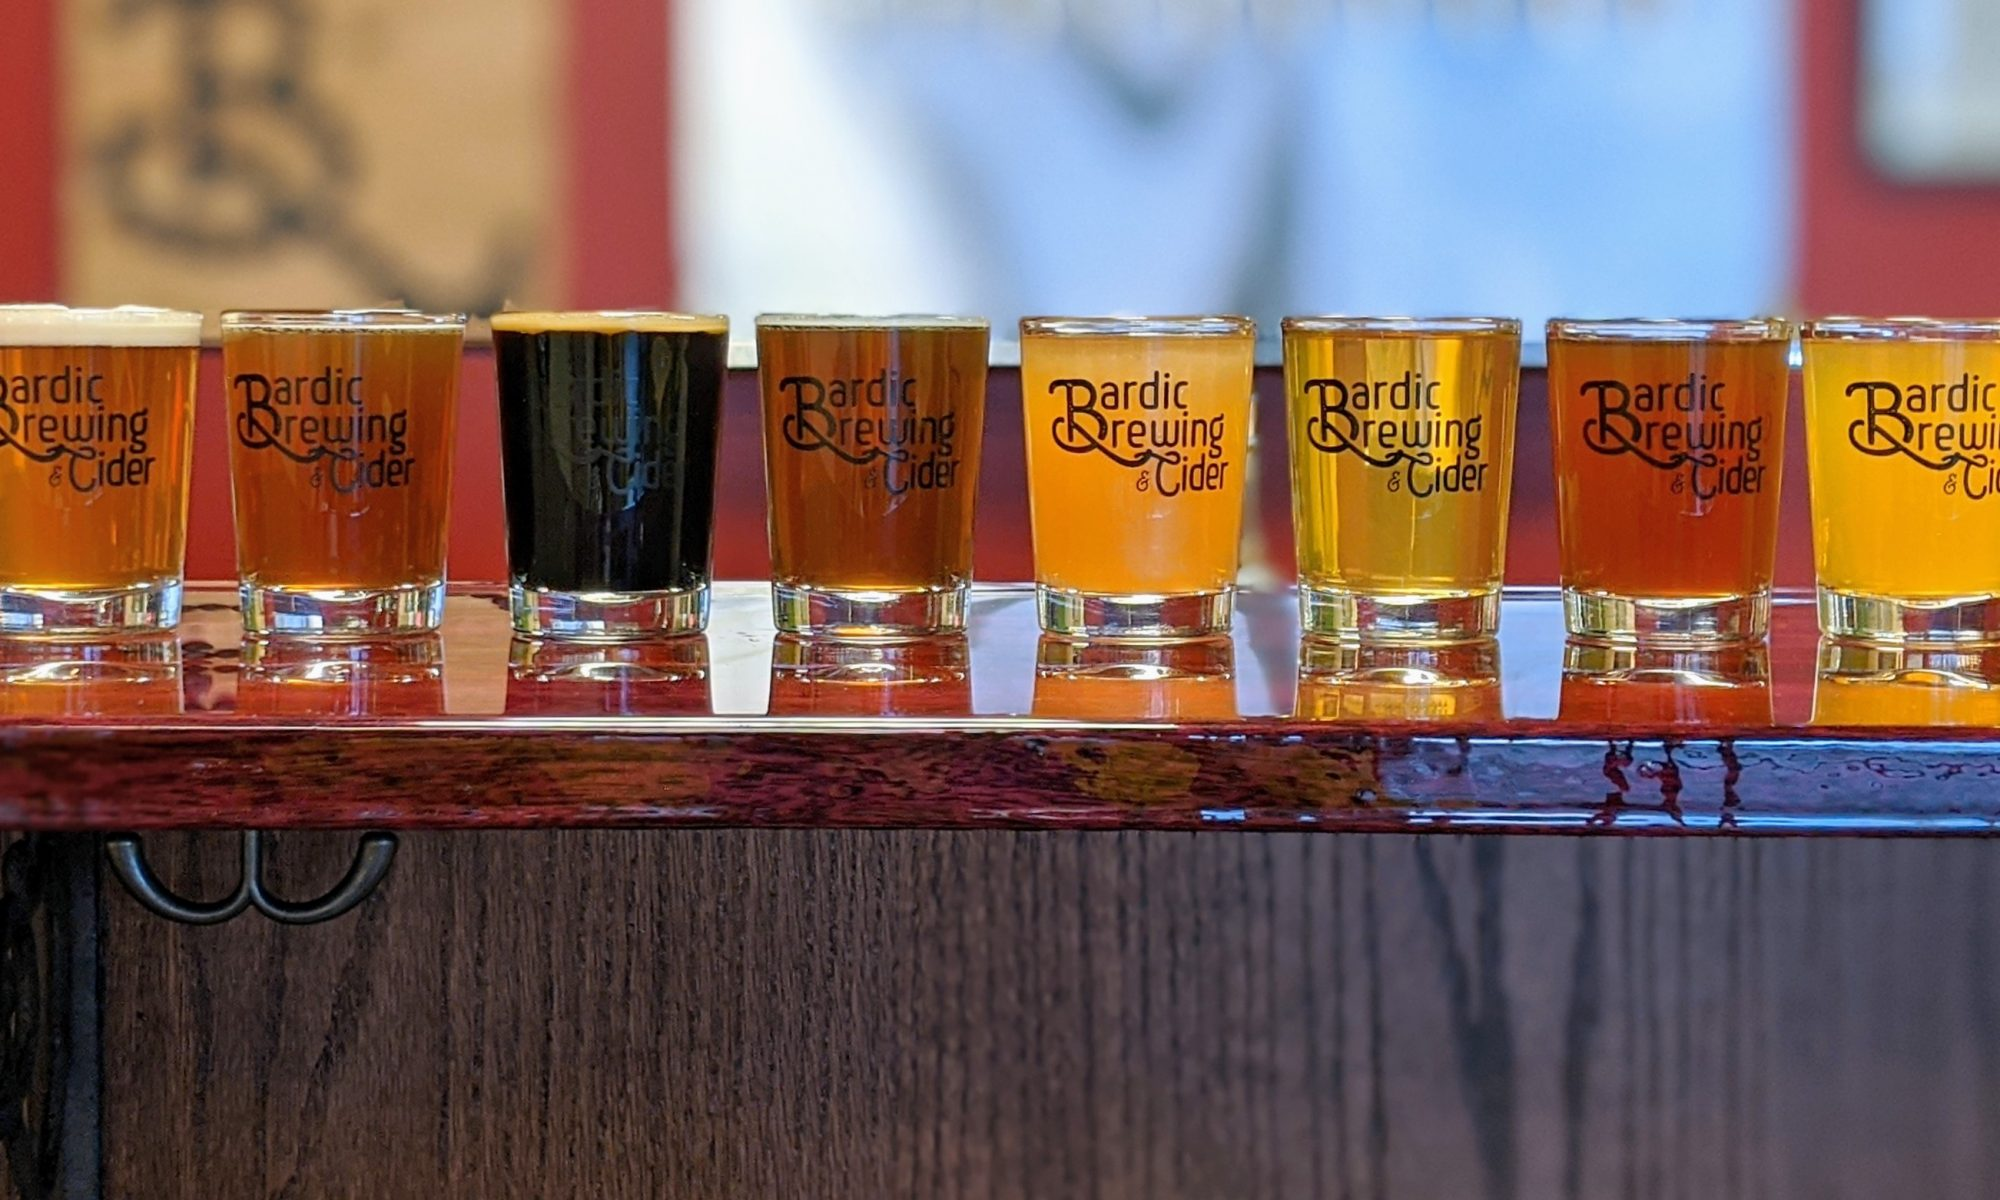 Bardic Brewing and Cider